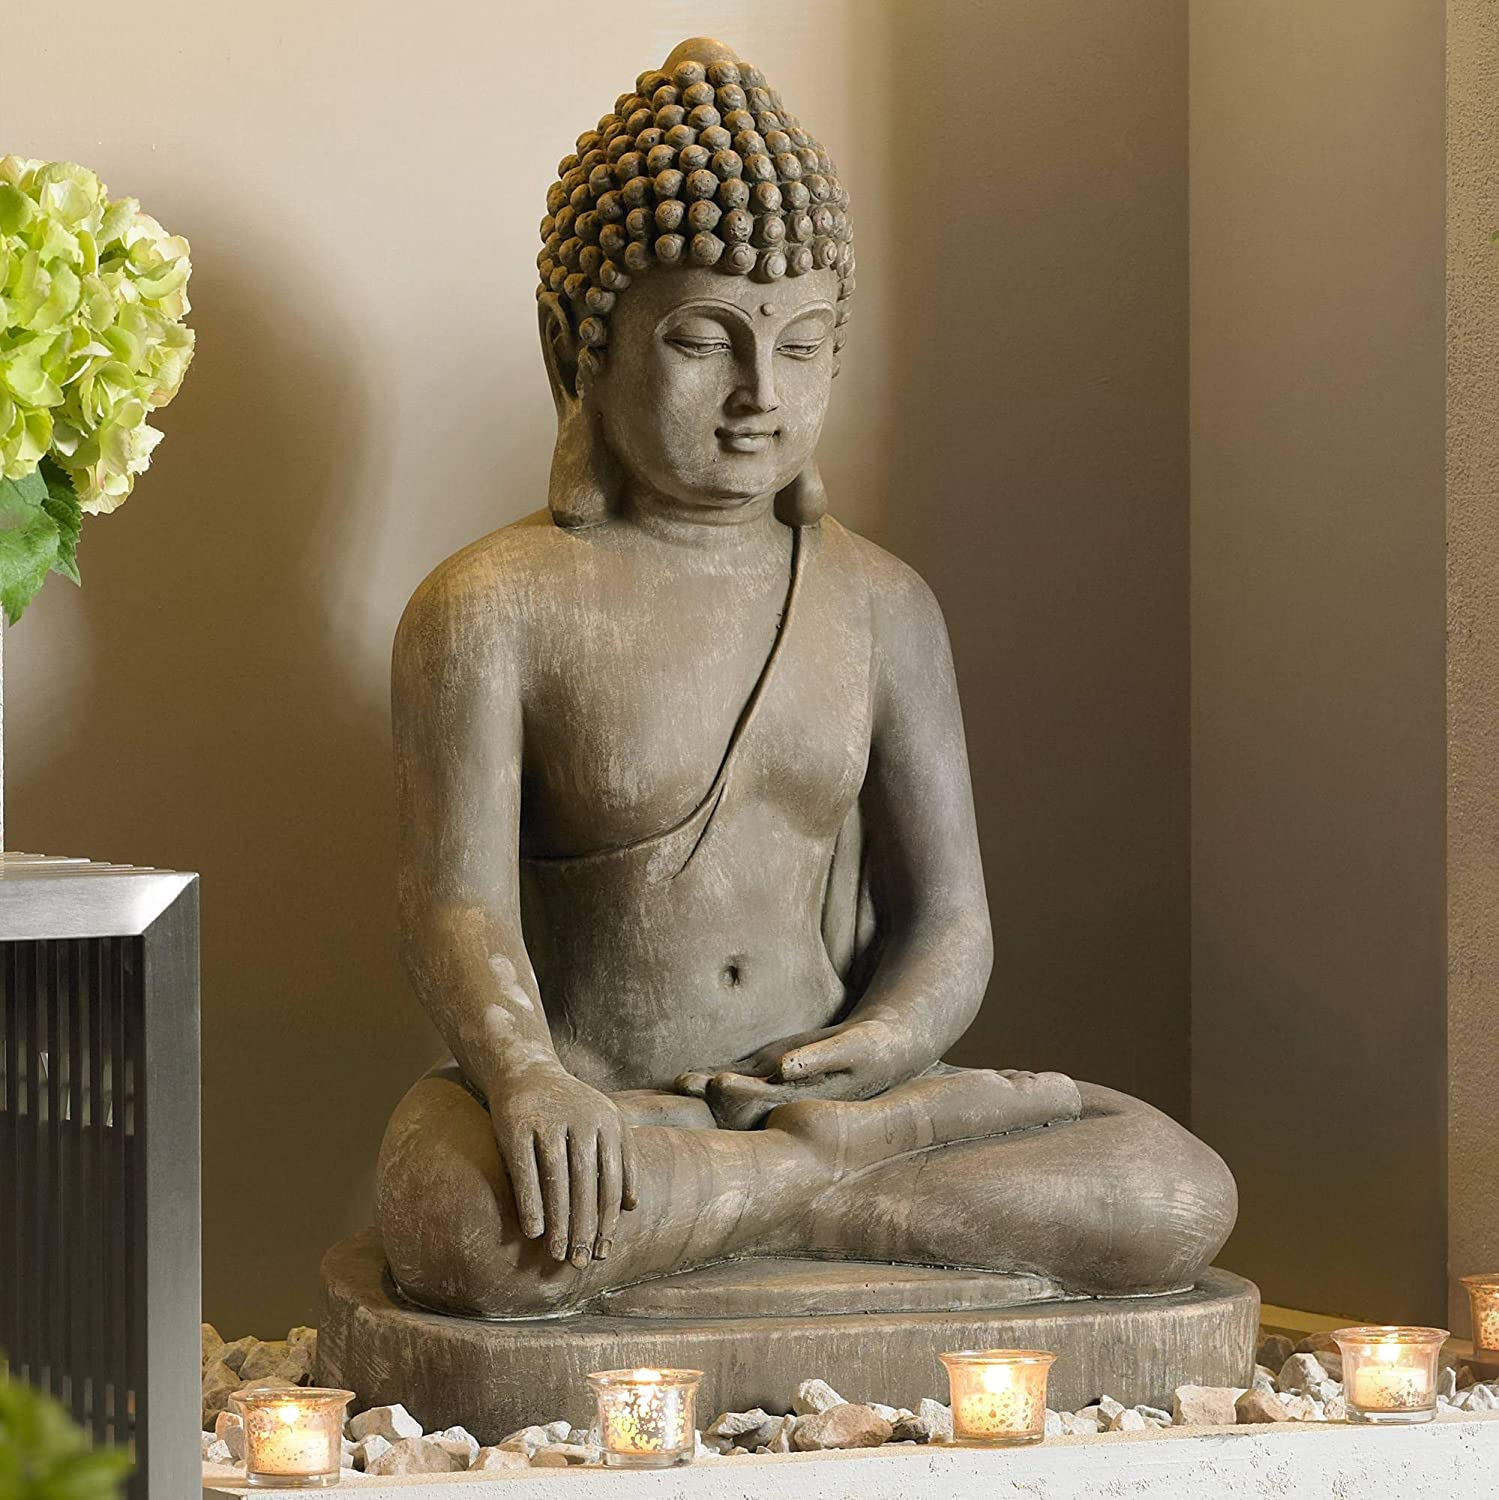 large-buddha-statue-for-indoor-outdoor-meditation-garden-weathered-finish-cast-resin-ideas-for-increasing-tranquility-and-inner-peace-through-decor